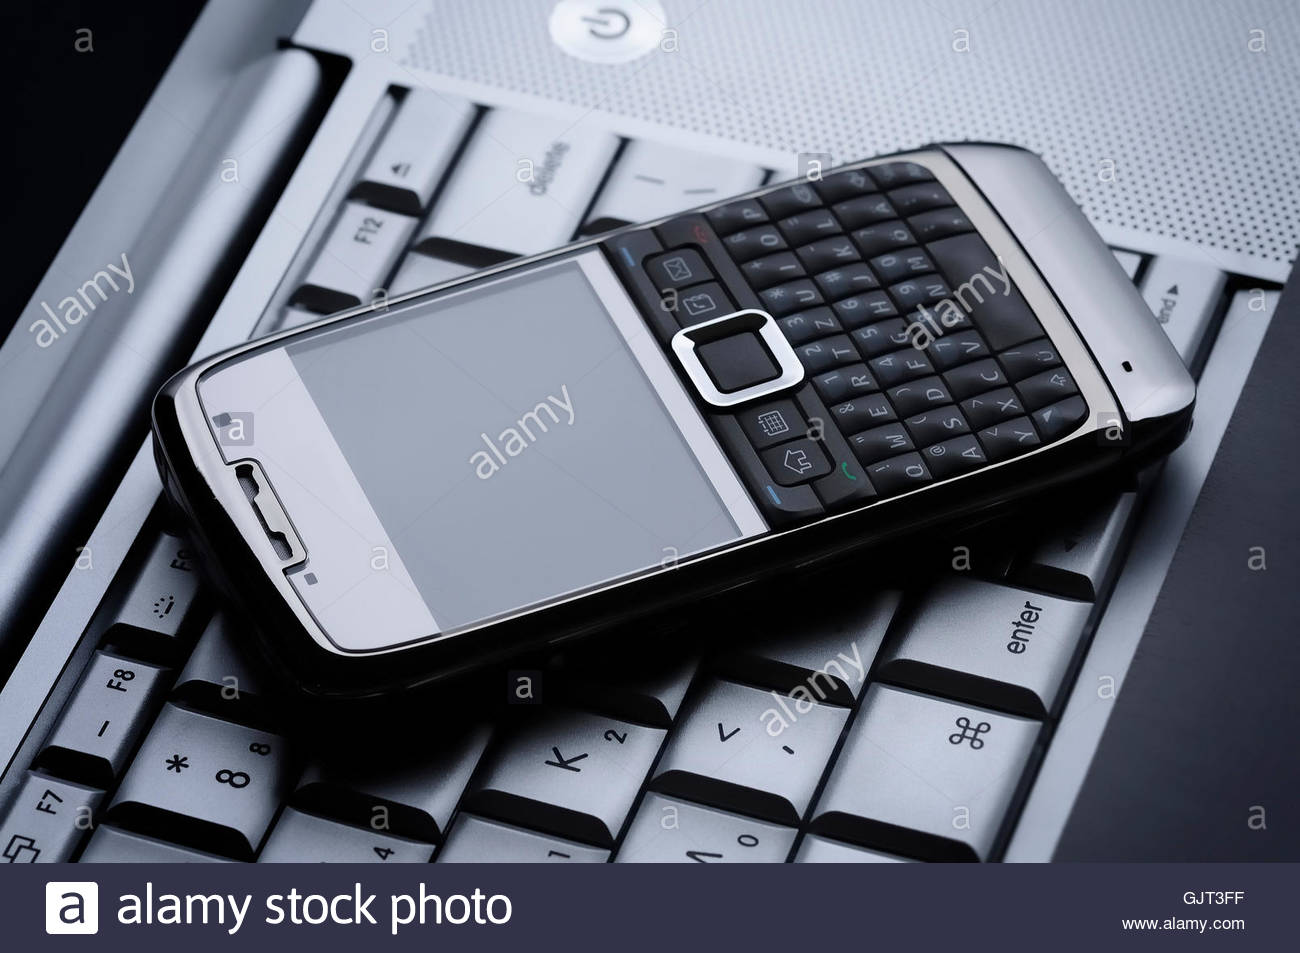 pda data informations - Stock Image